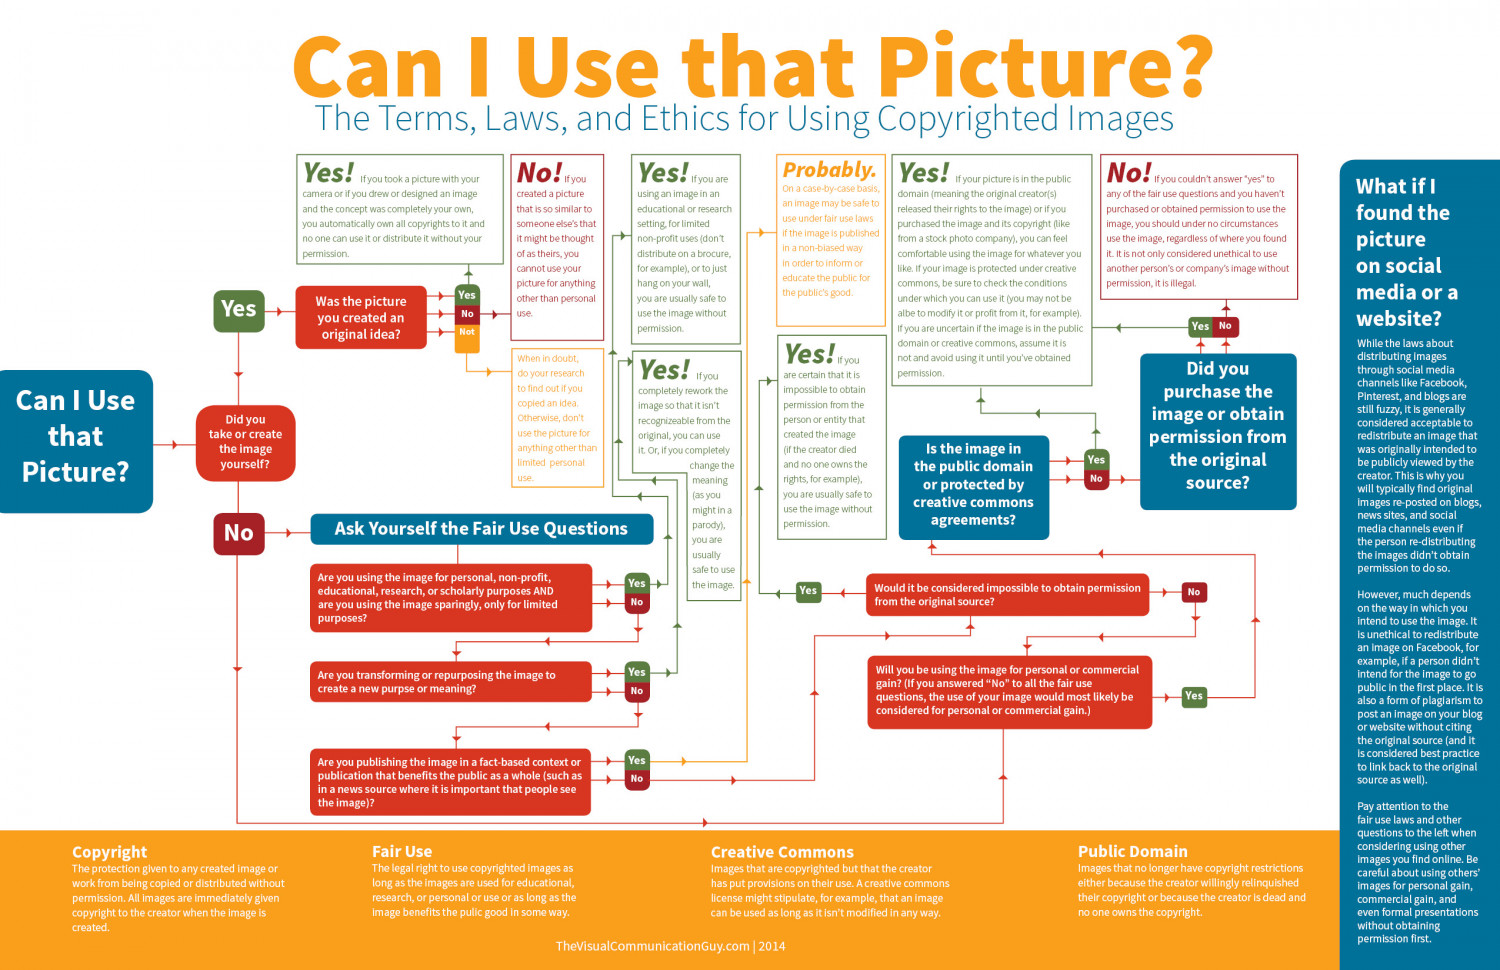 Can I Use that Picture? Infographic